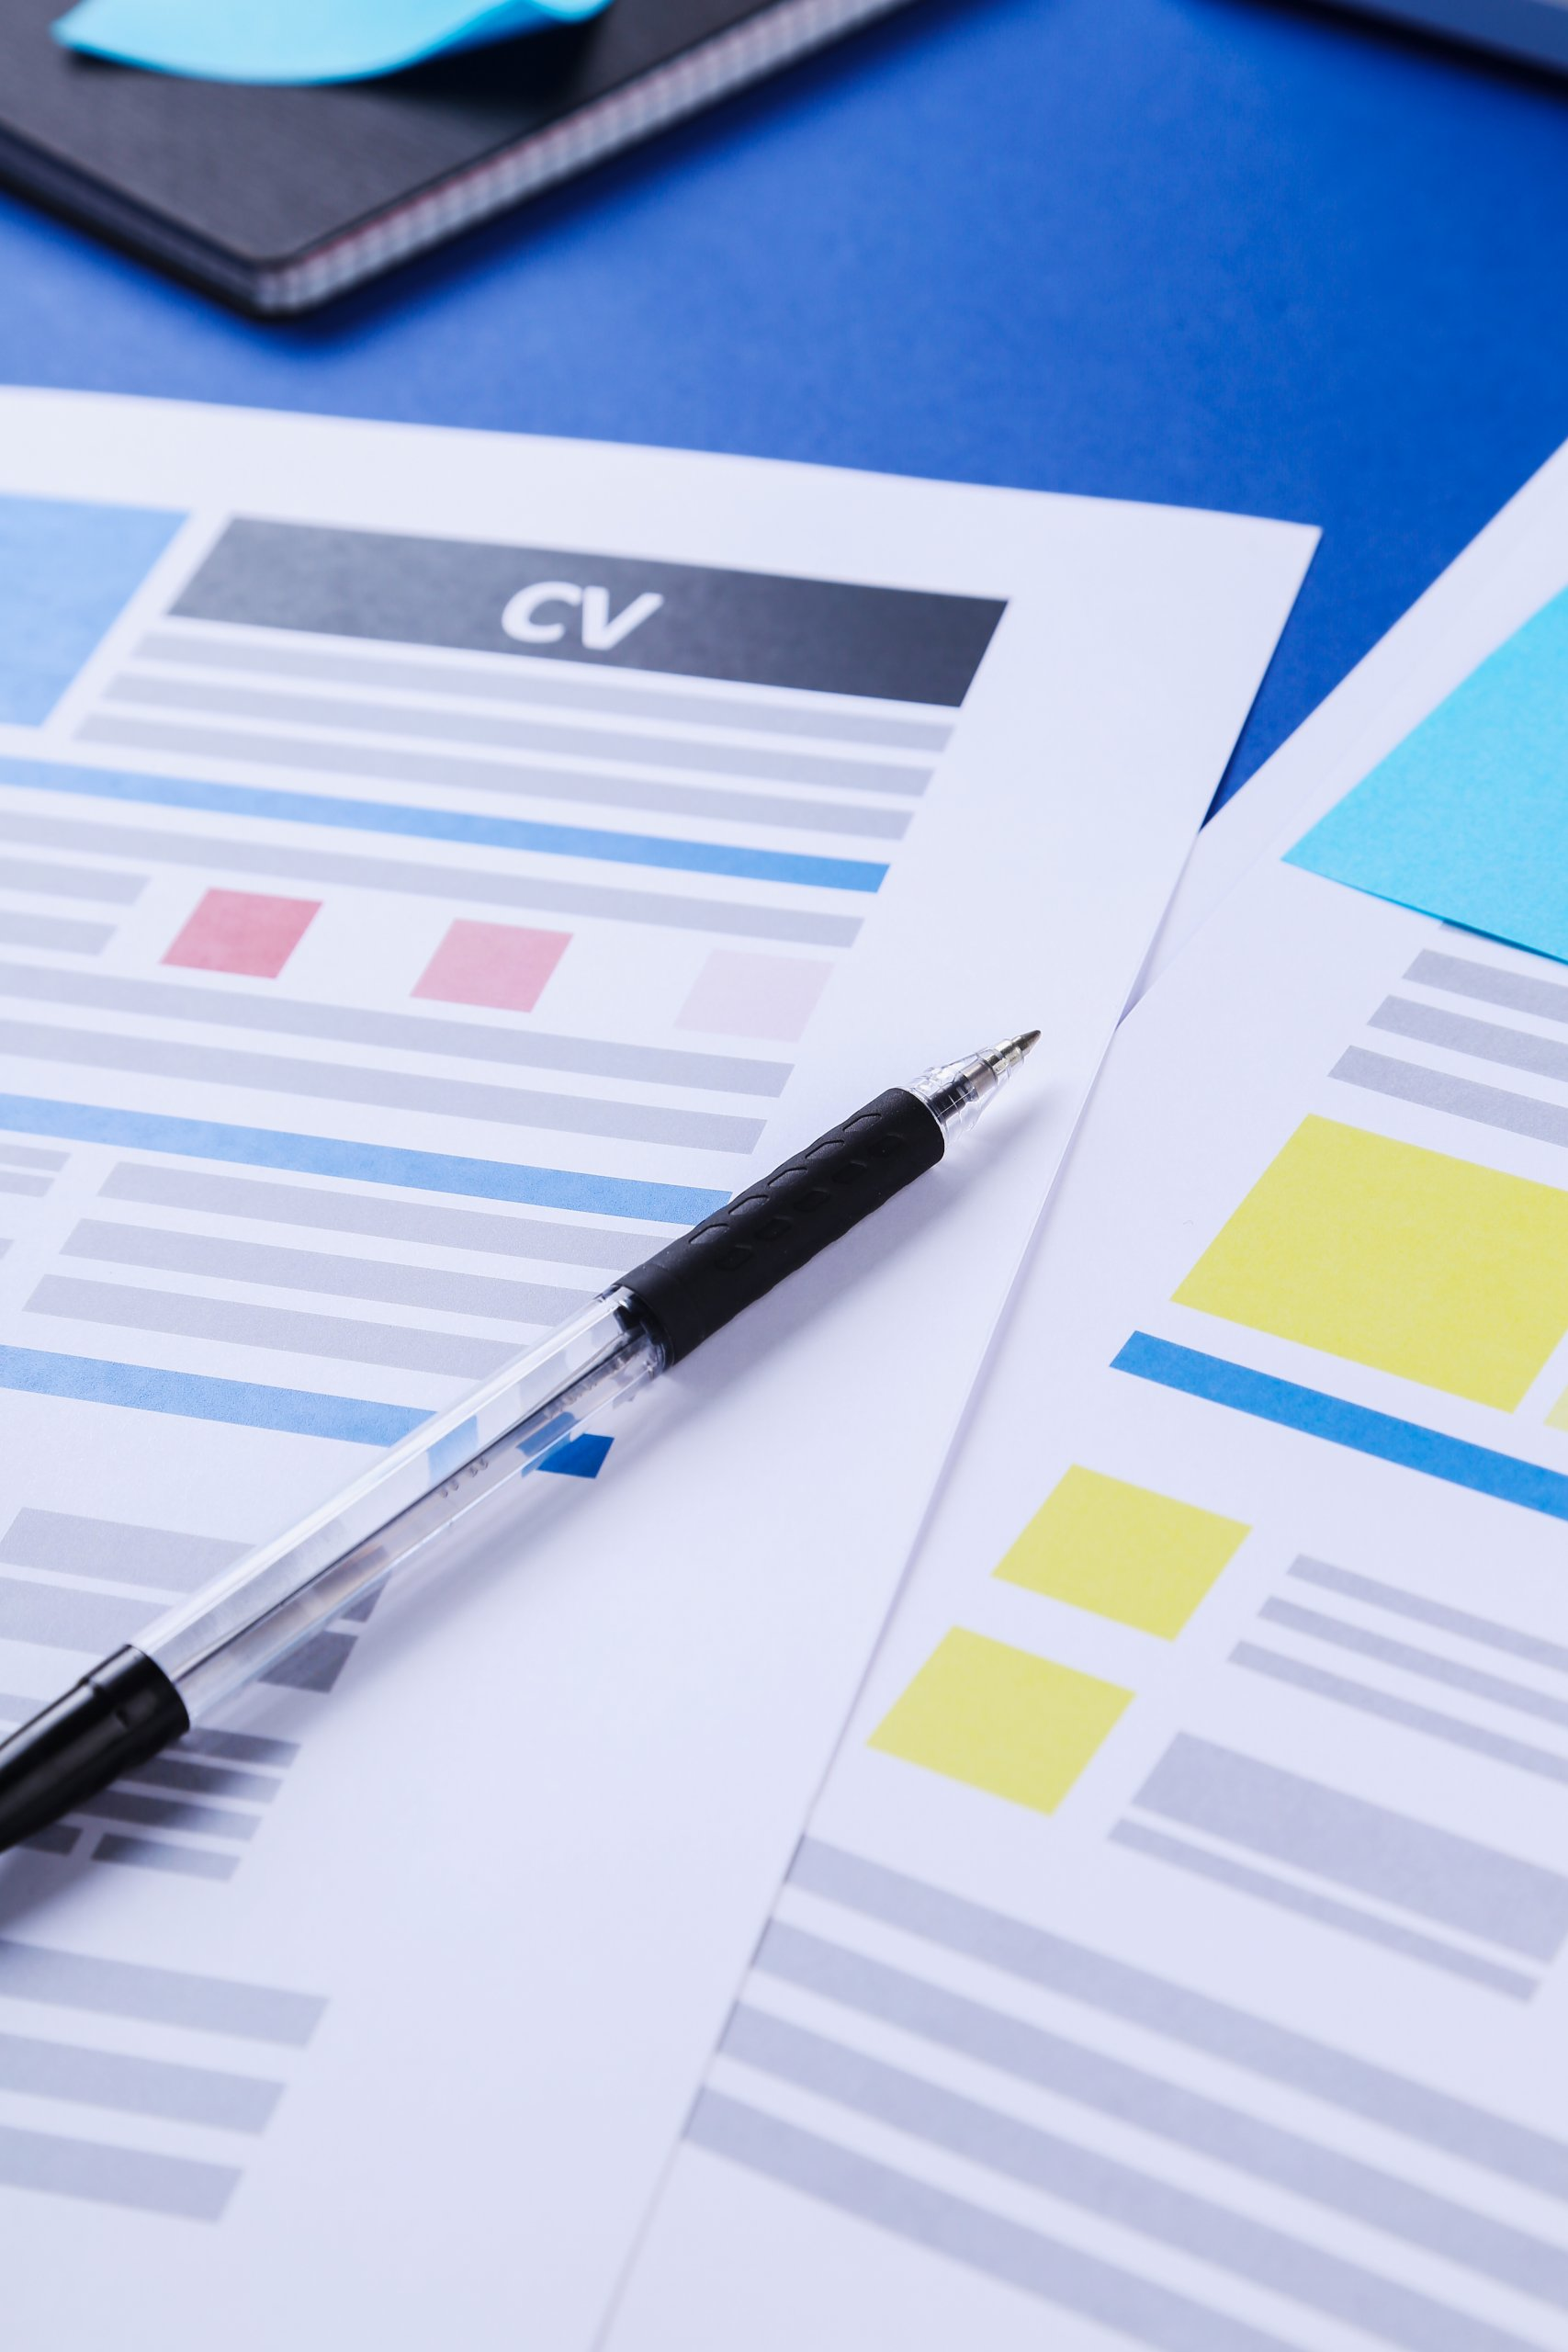 Writing a CV is cumbersome, but it's worth it!